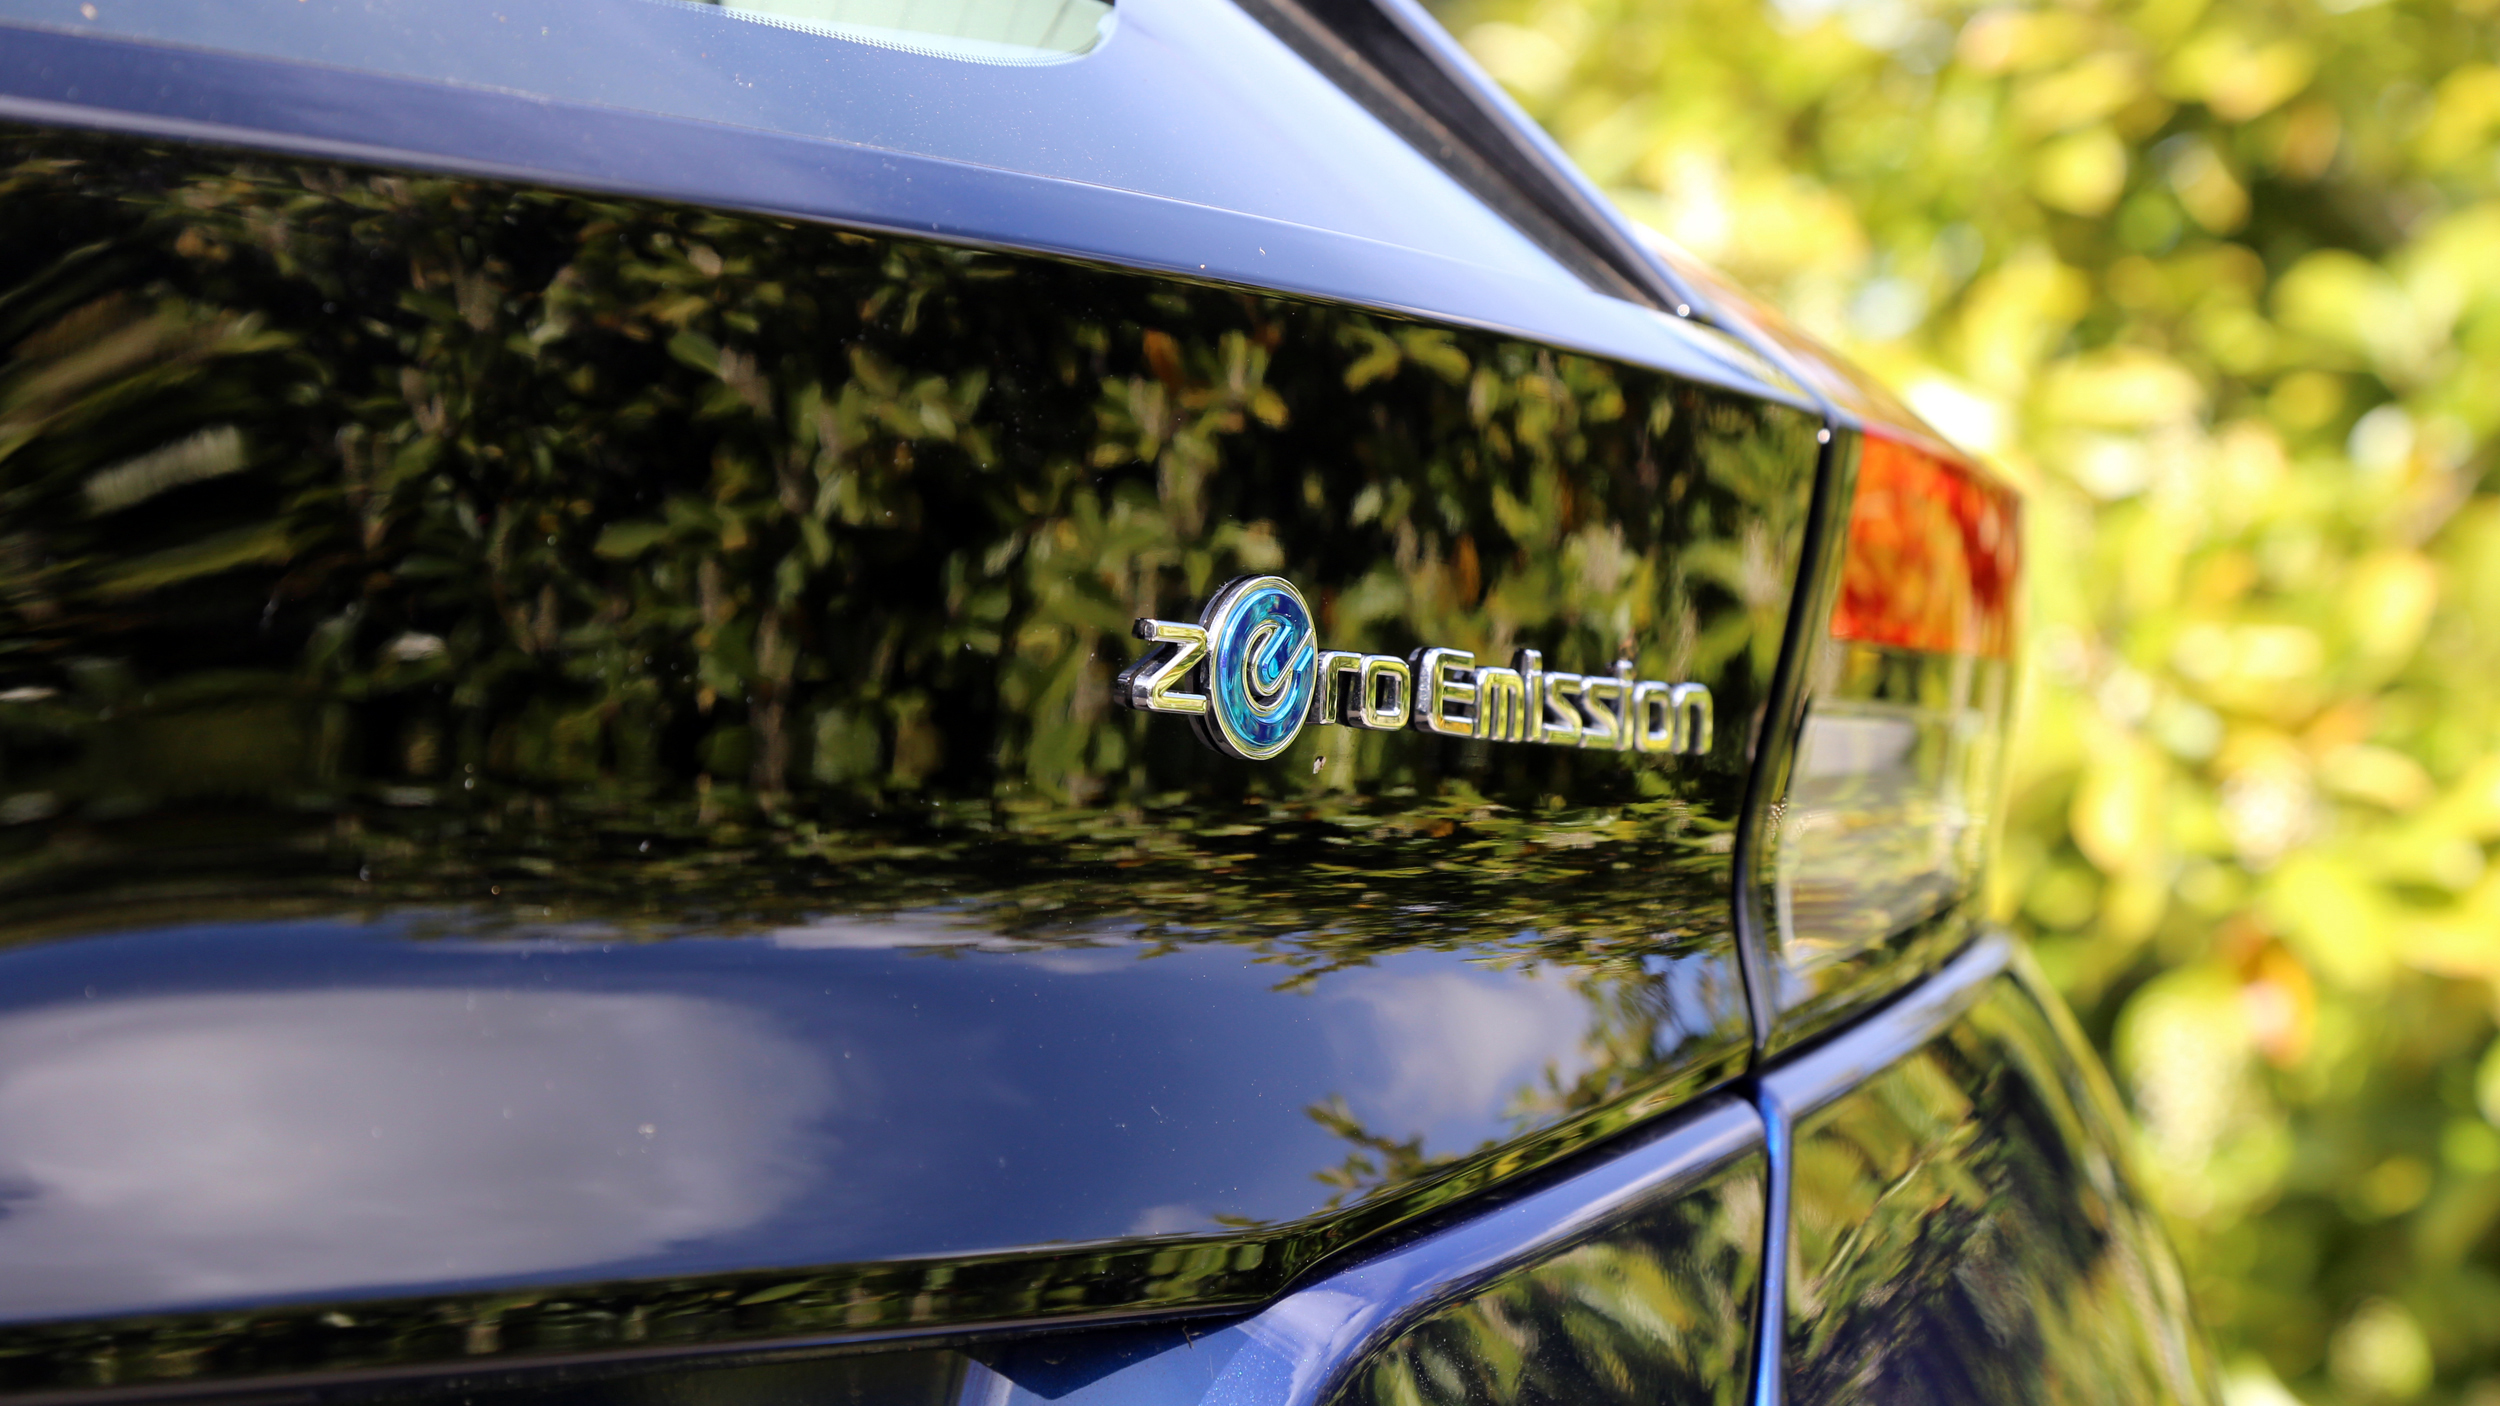 2019 Nissan Leaf Plus Second Drive Review | Testing its